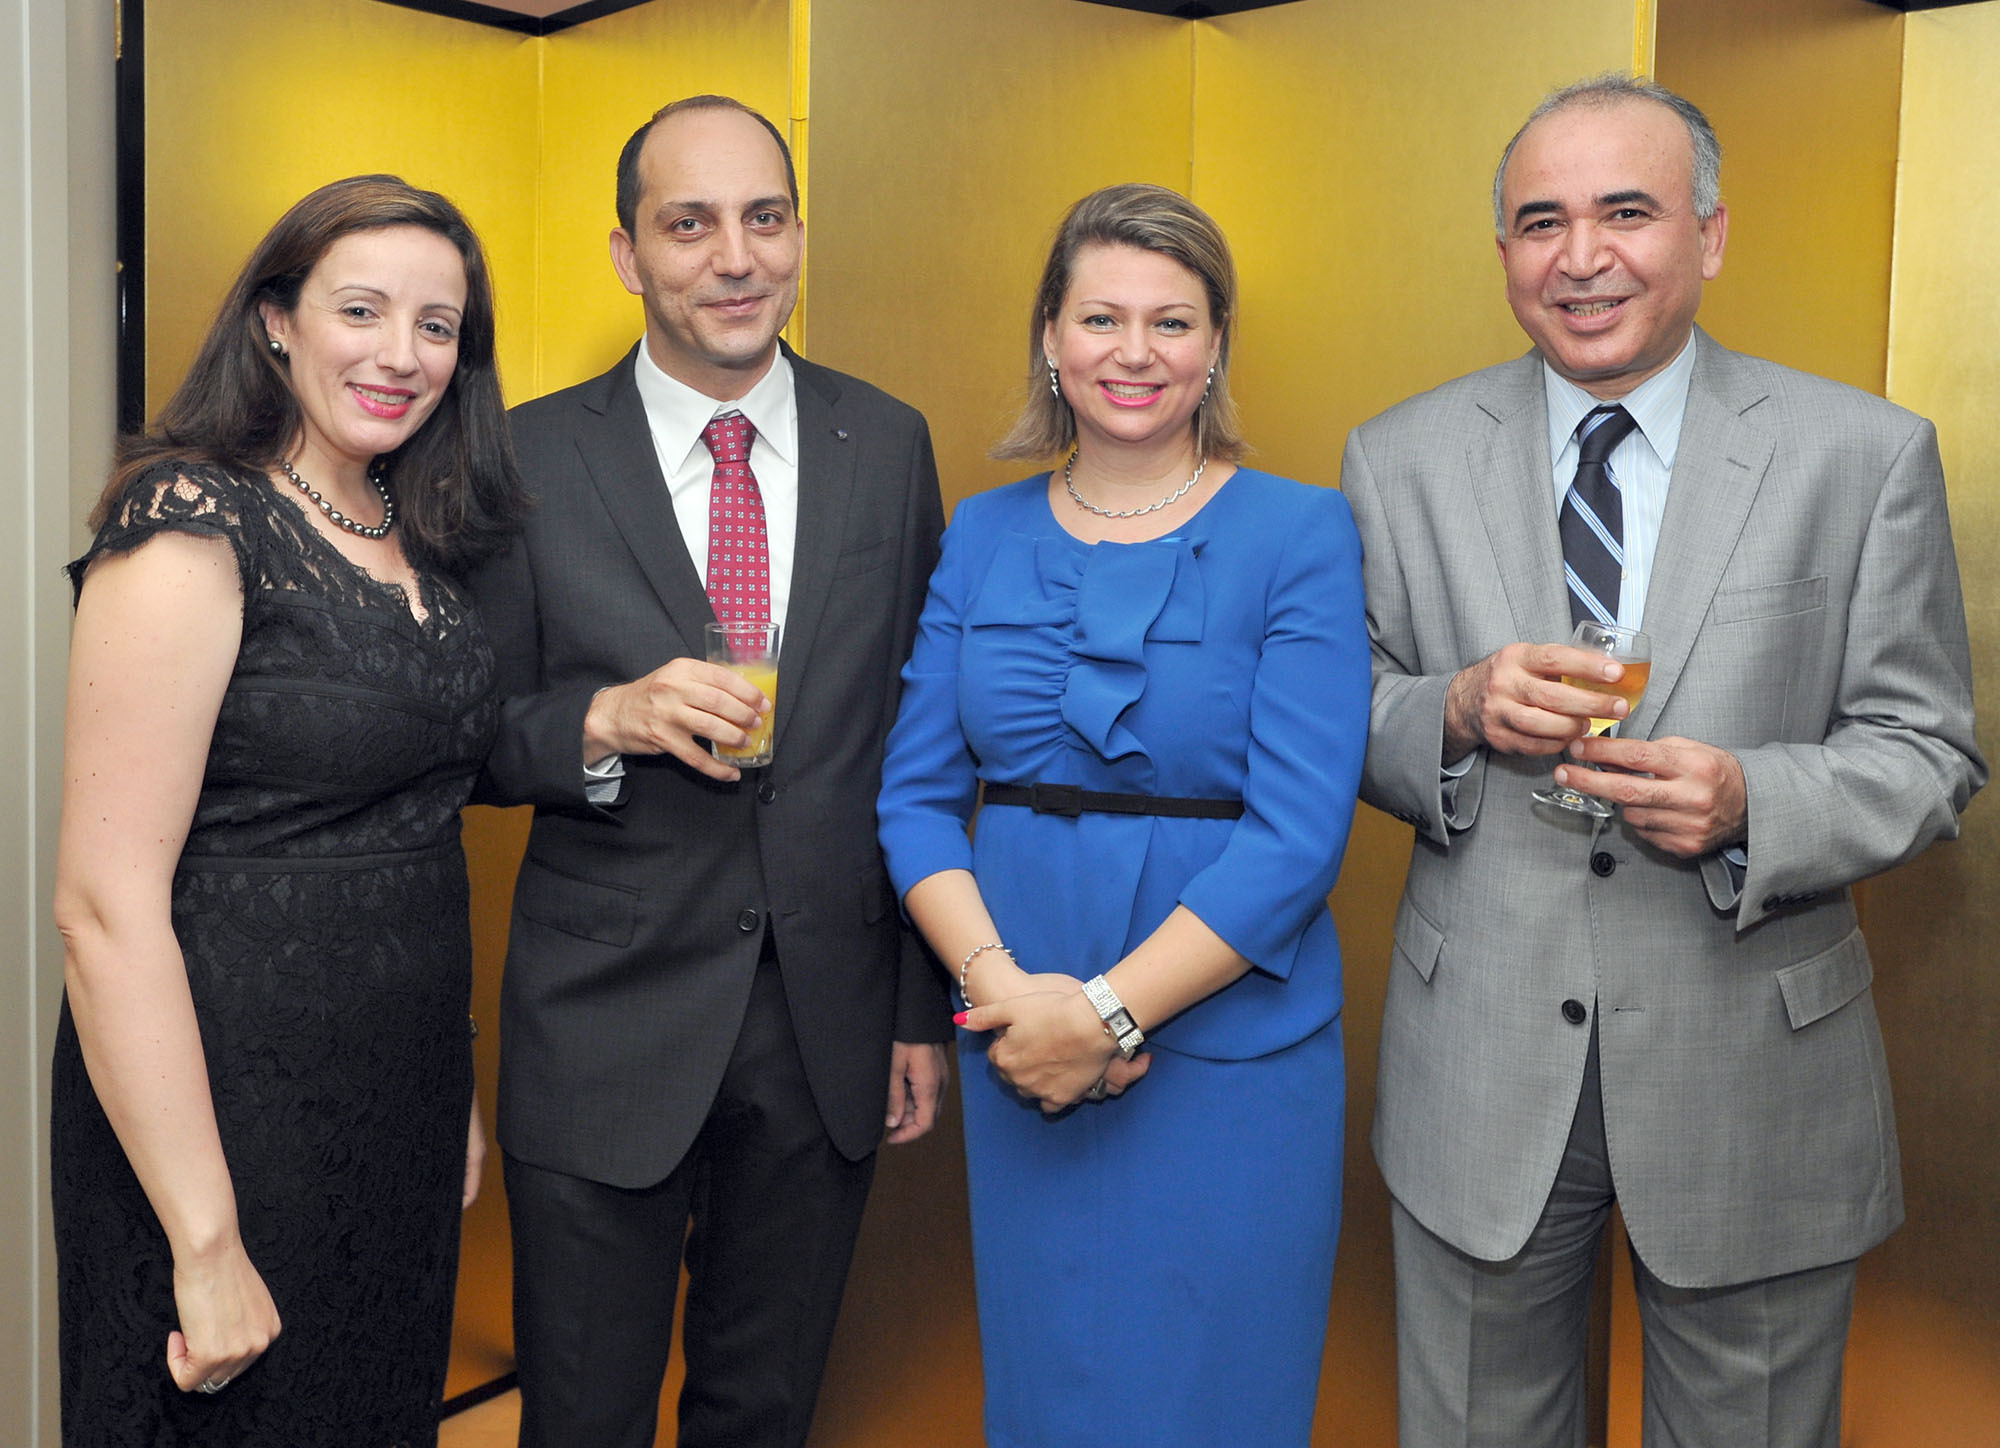 Counsellor and DCM of the Embassy of the Republic of Tunisia Mohamed Elloumi (second from left) and his wife Houda (second from right) are joined by Tunisian Ambassador Kais Darragi (right) and his wife Wided (left) during a farewell party for Elloumi at the ambassador's residence in Tokyo on July 11. |  YOSHIAKI MIURA